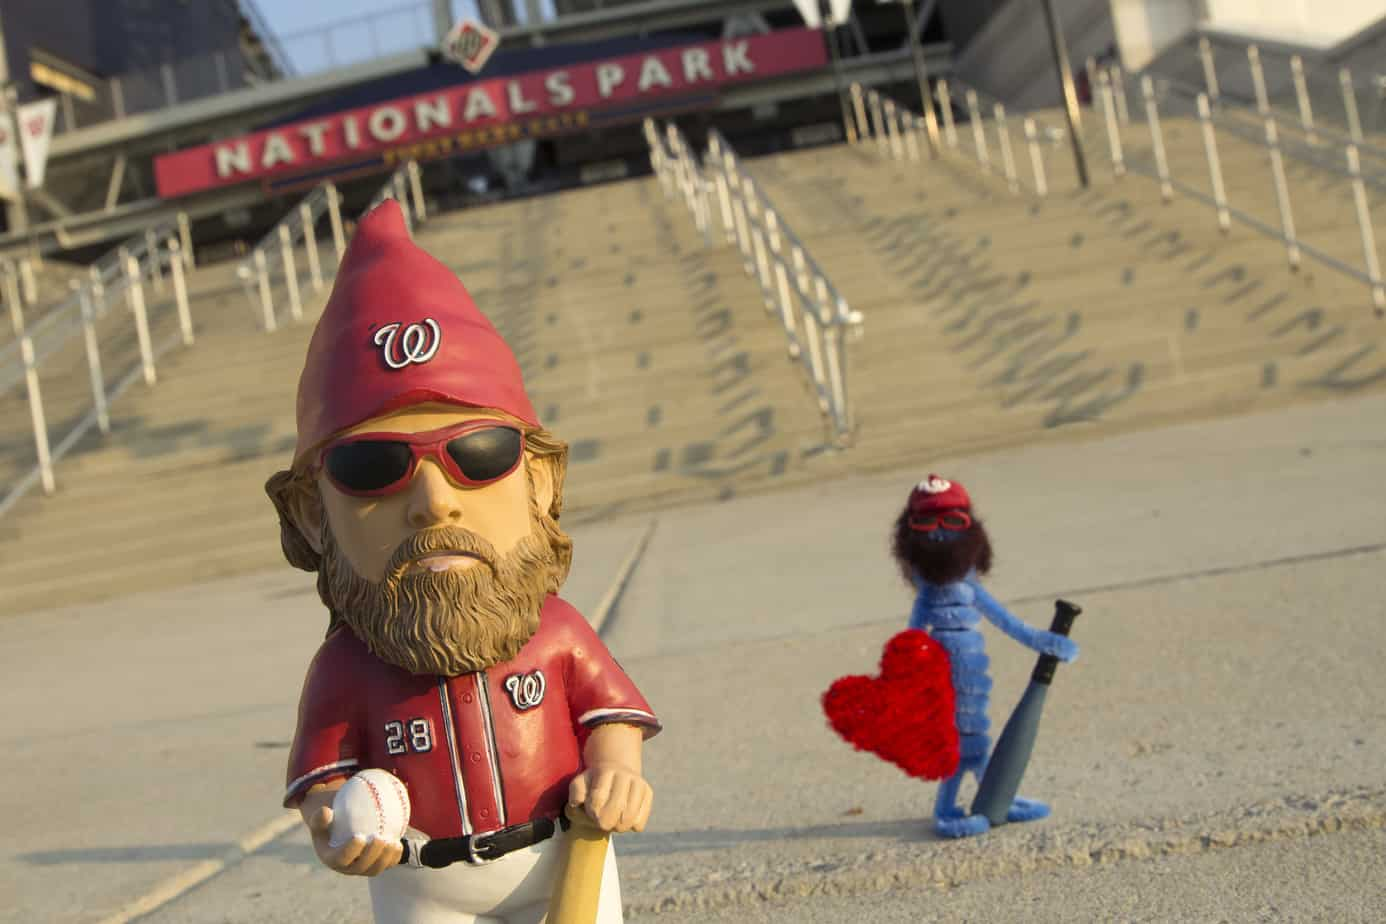 Gnome from Nationals Park